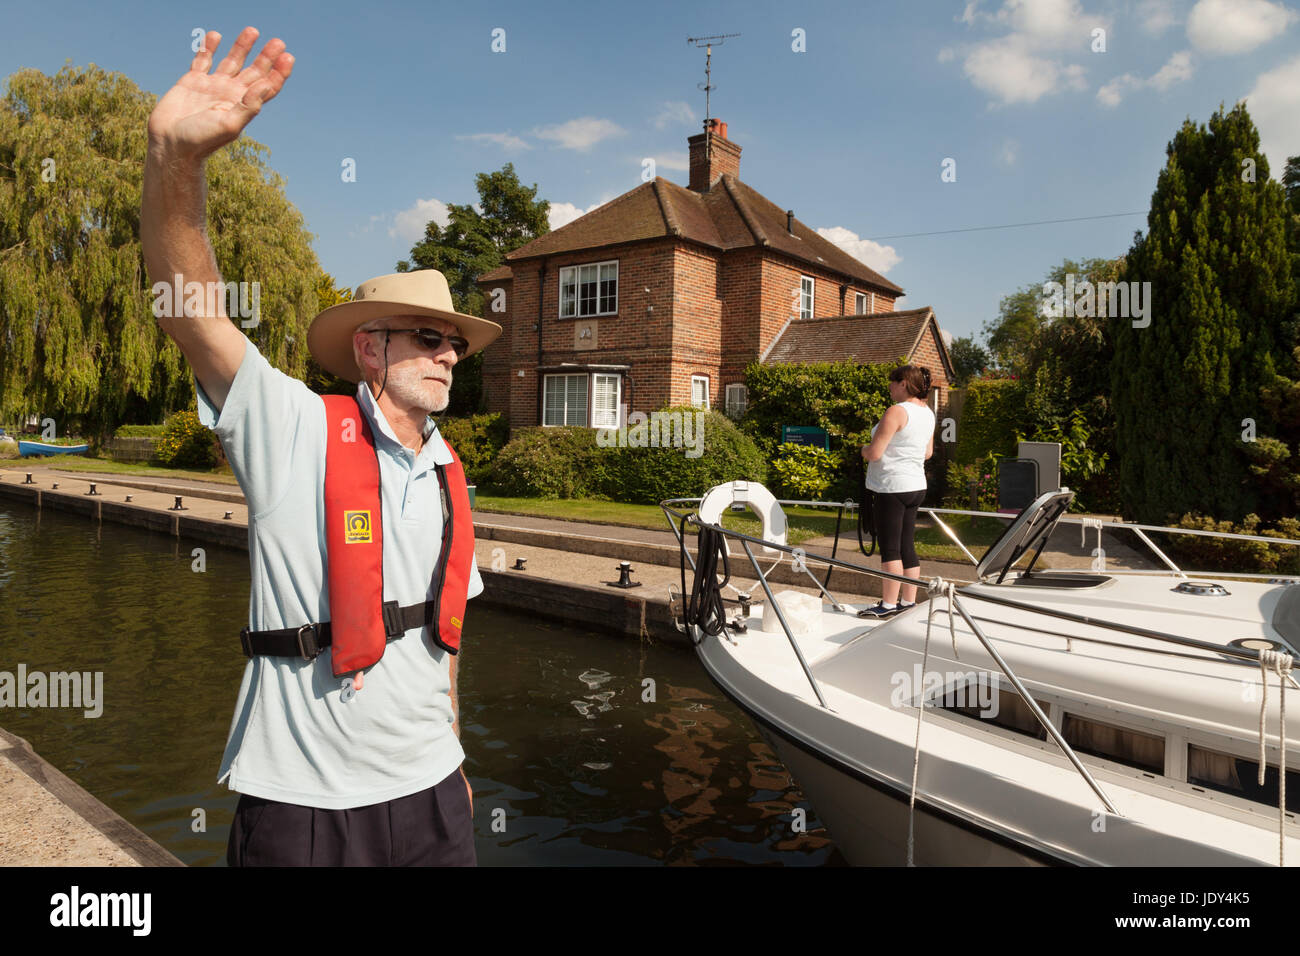 River Thames Oxfordshire - lock keeper at Shiplake Lock directing boats, Thames river, Oxfordshire England UK - Stock Image